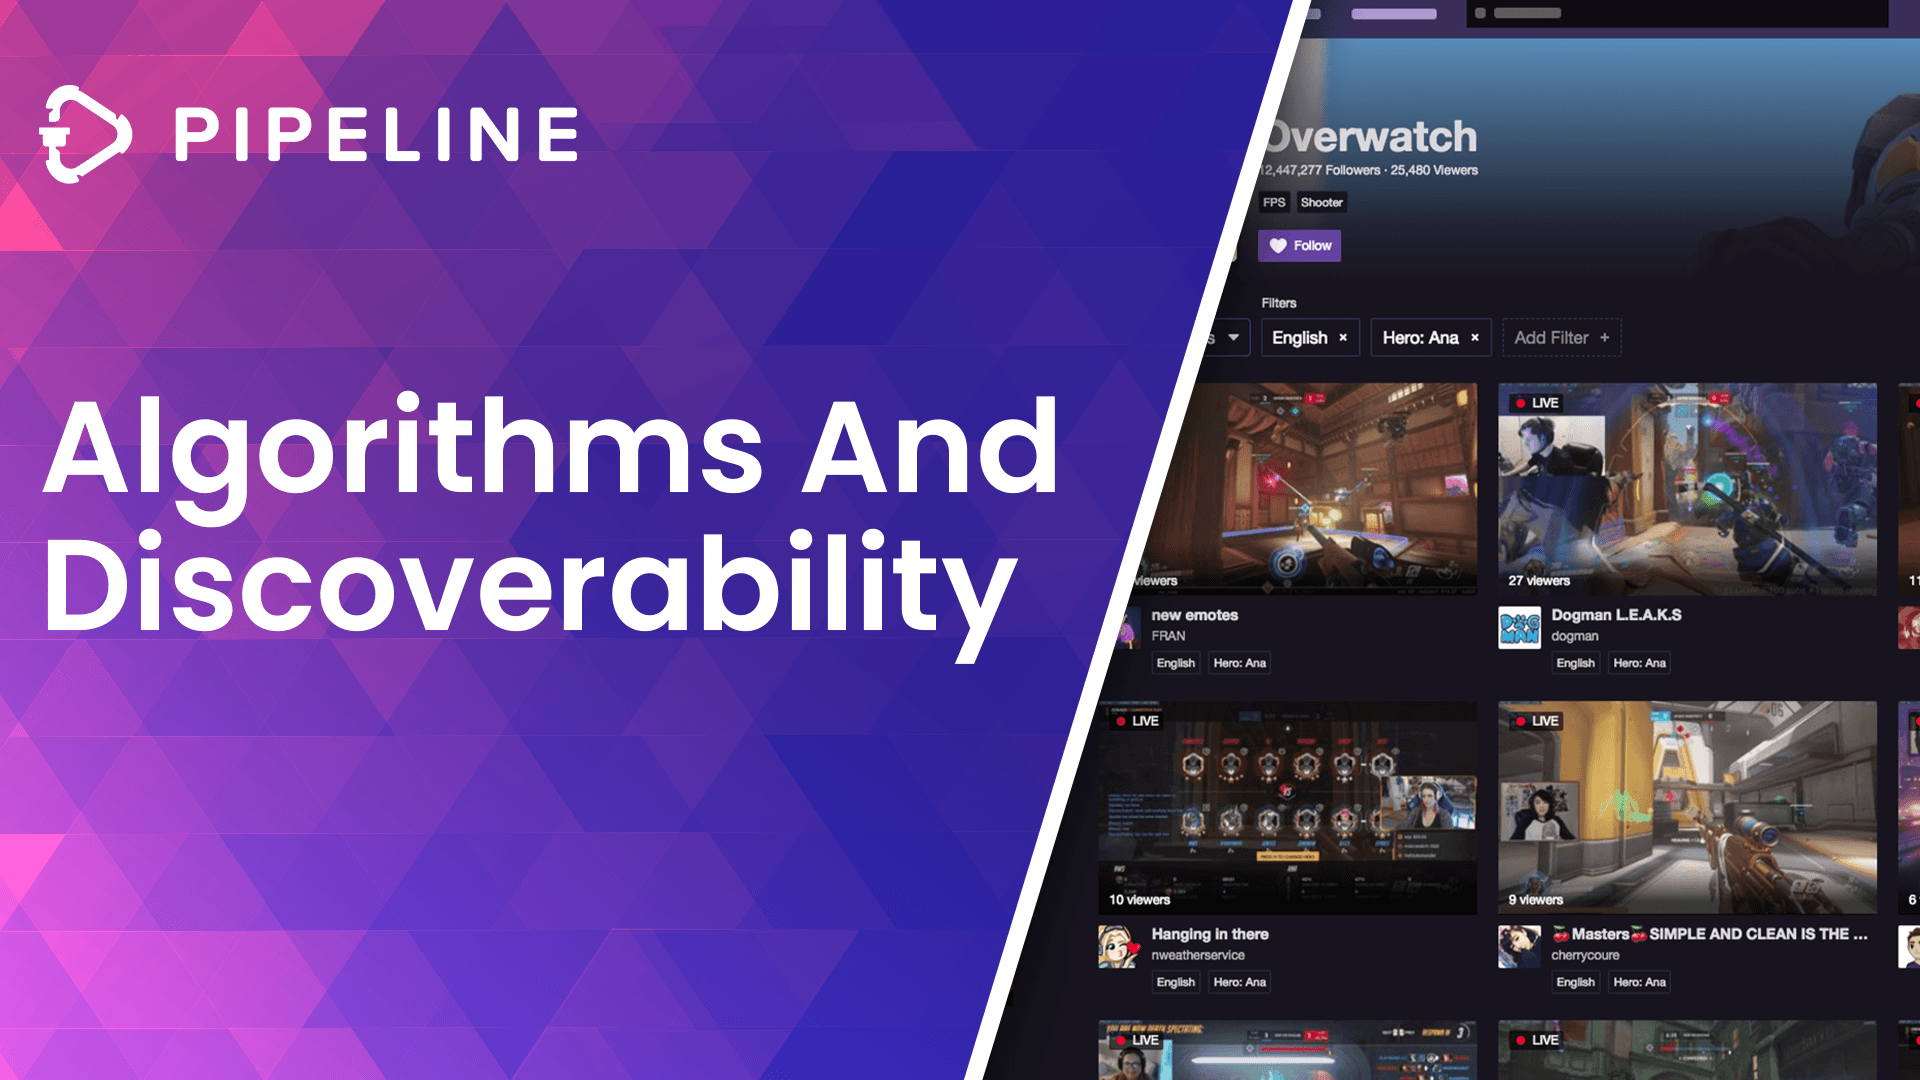 Algorithms and Discoverability